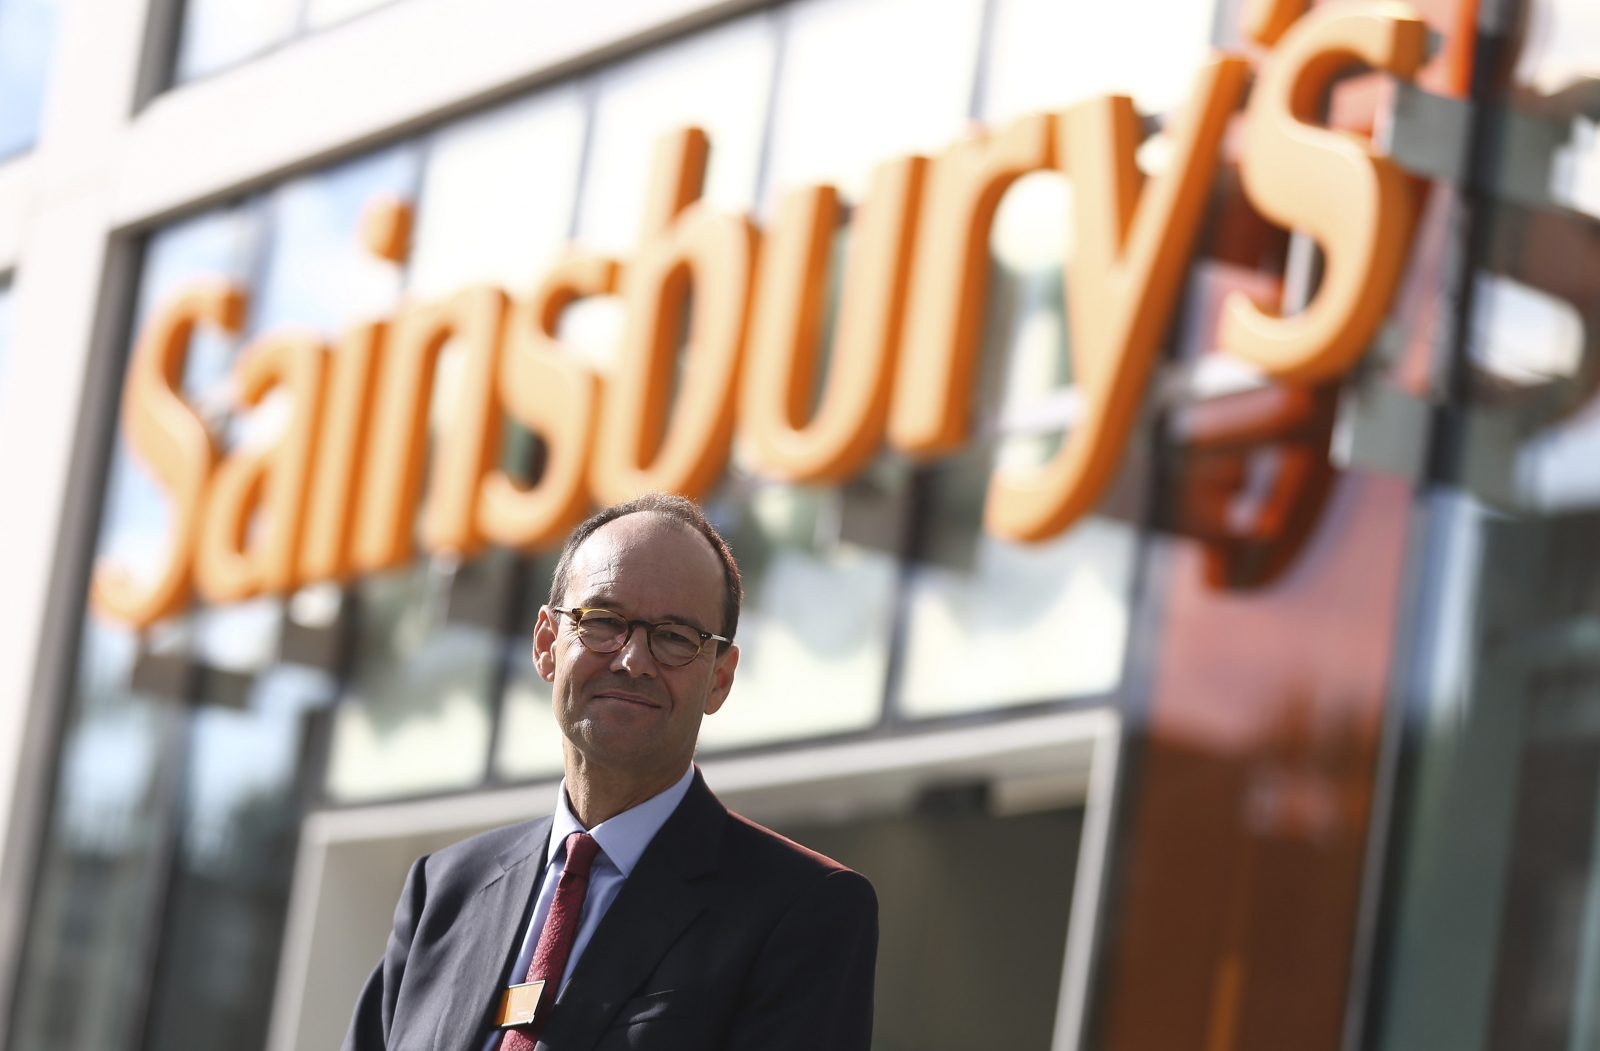 Sainsbury's and Asda merger a 'game changer' for UK ...